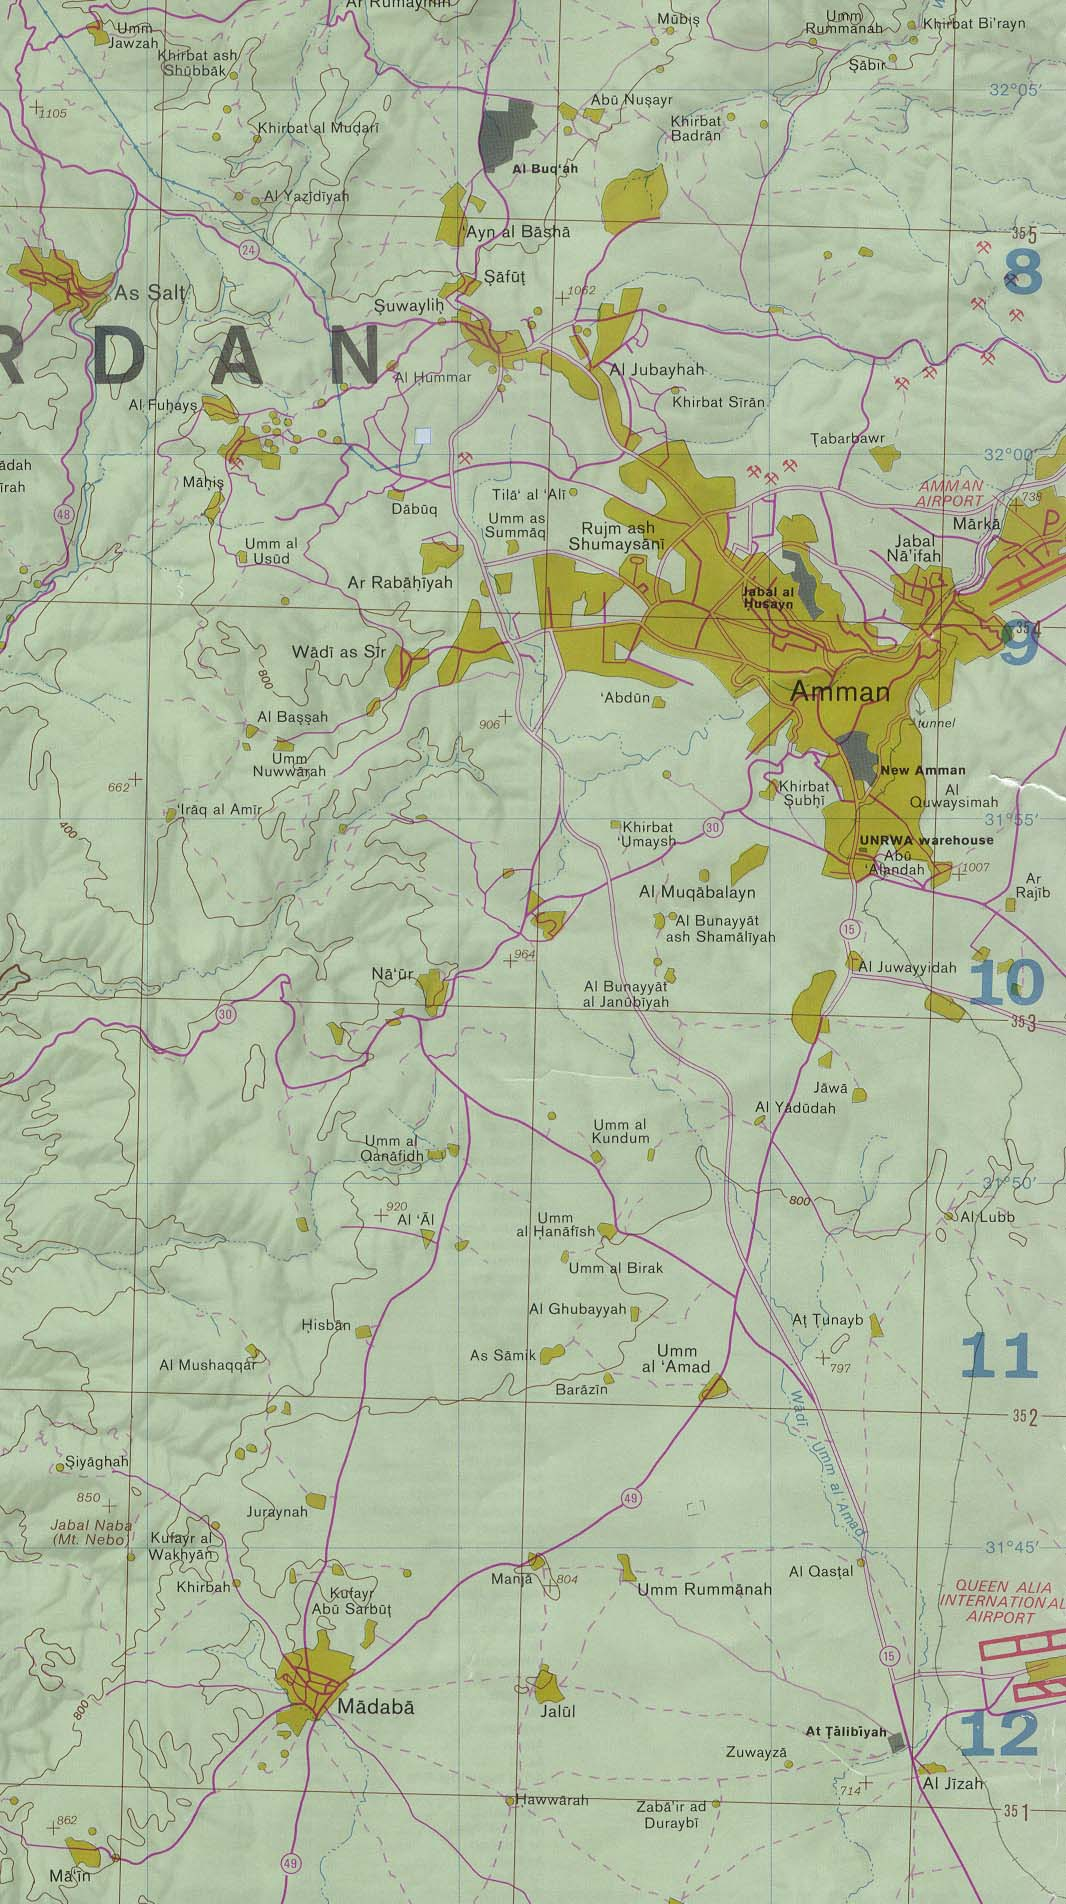 Jordan maps perry castaeda map collection ut library online jordan region from west bank and vicinity 1992 278k and entire map 35mb gumiabroncs Choice Image